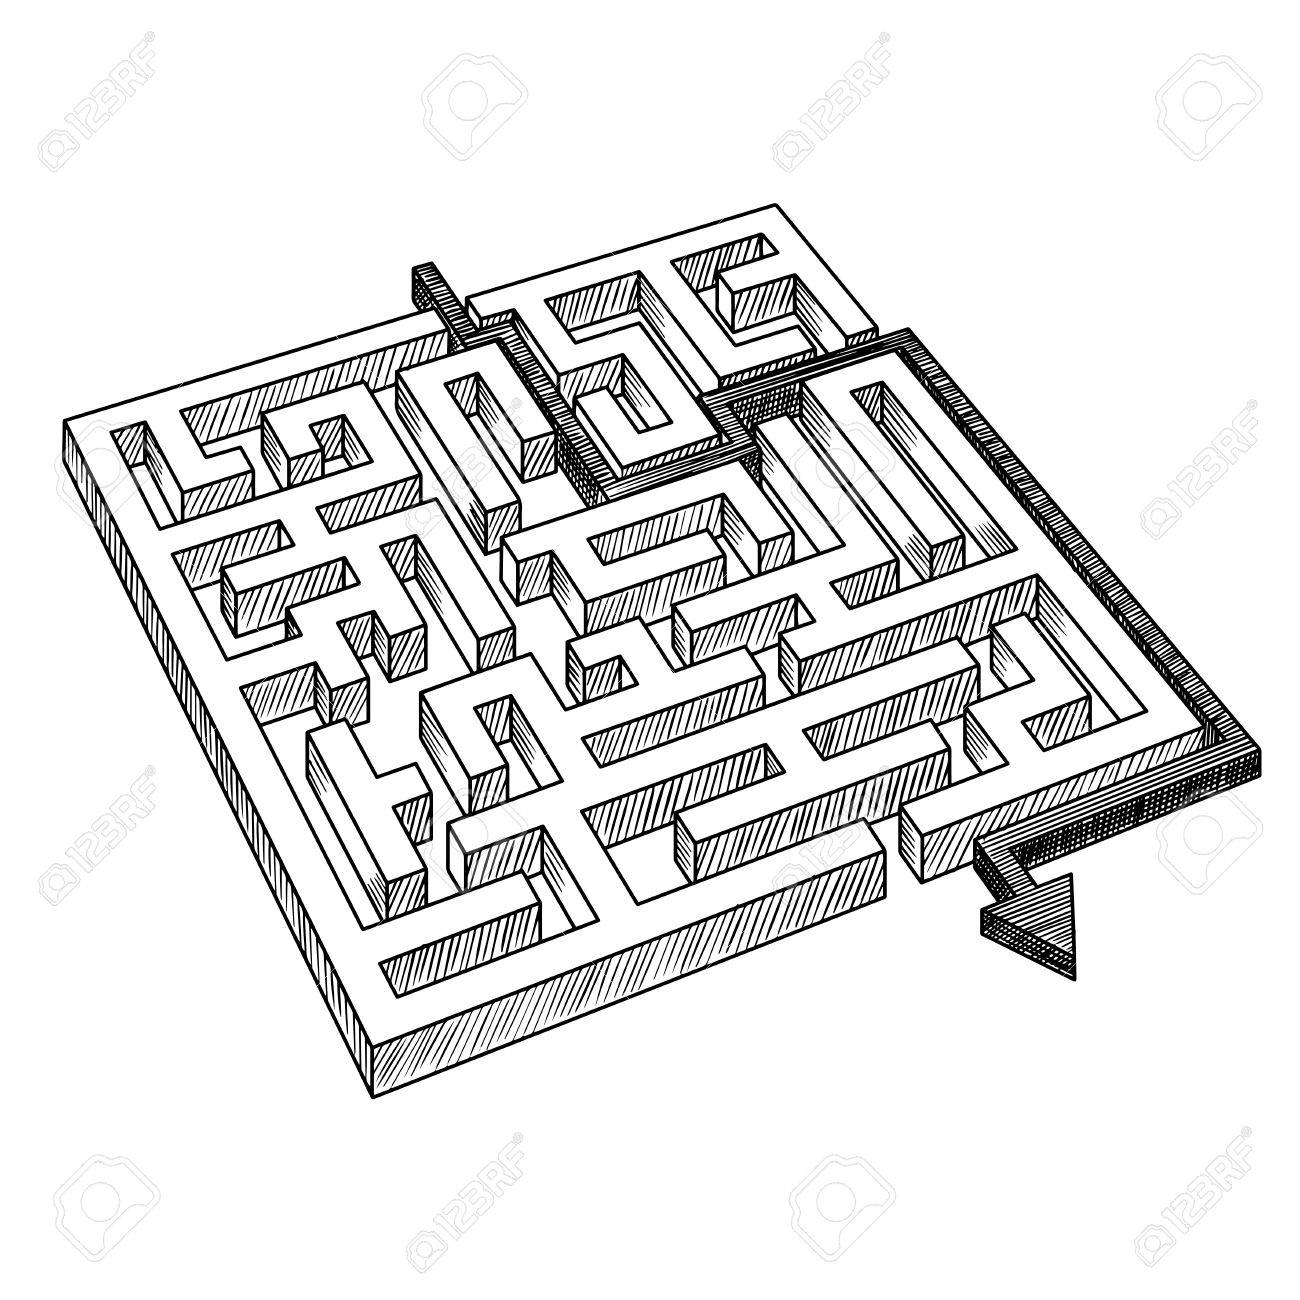 1300x1300 Sketch Of Labyrinth Or Maze, Solved By Arrow, Showing A Workaround